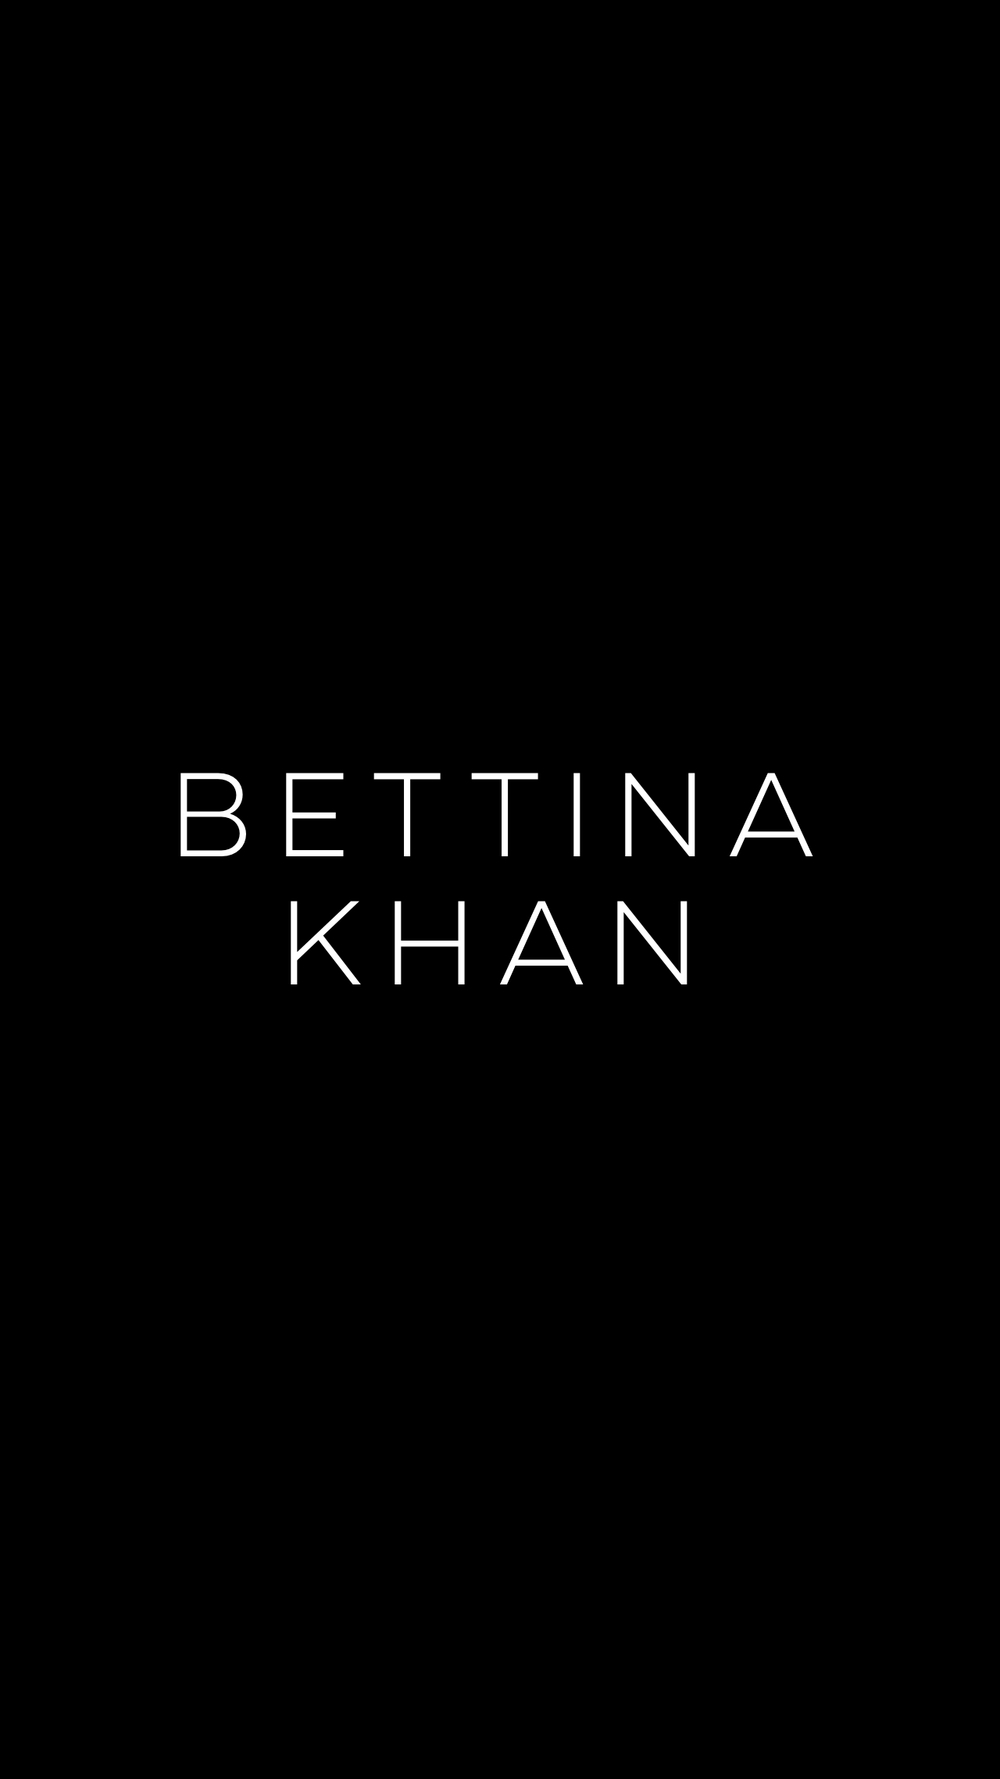 BETTINA KHAN (2).jpg